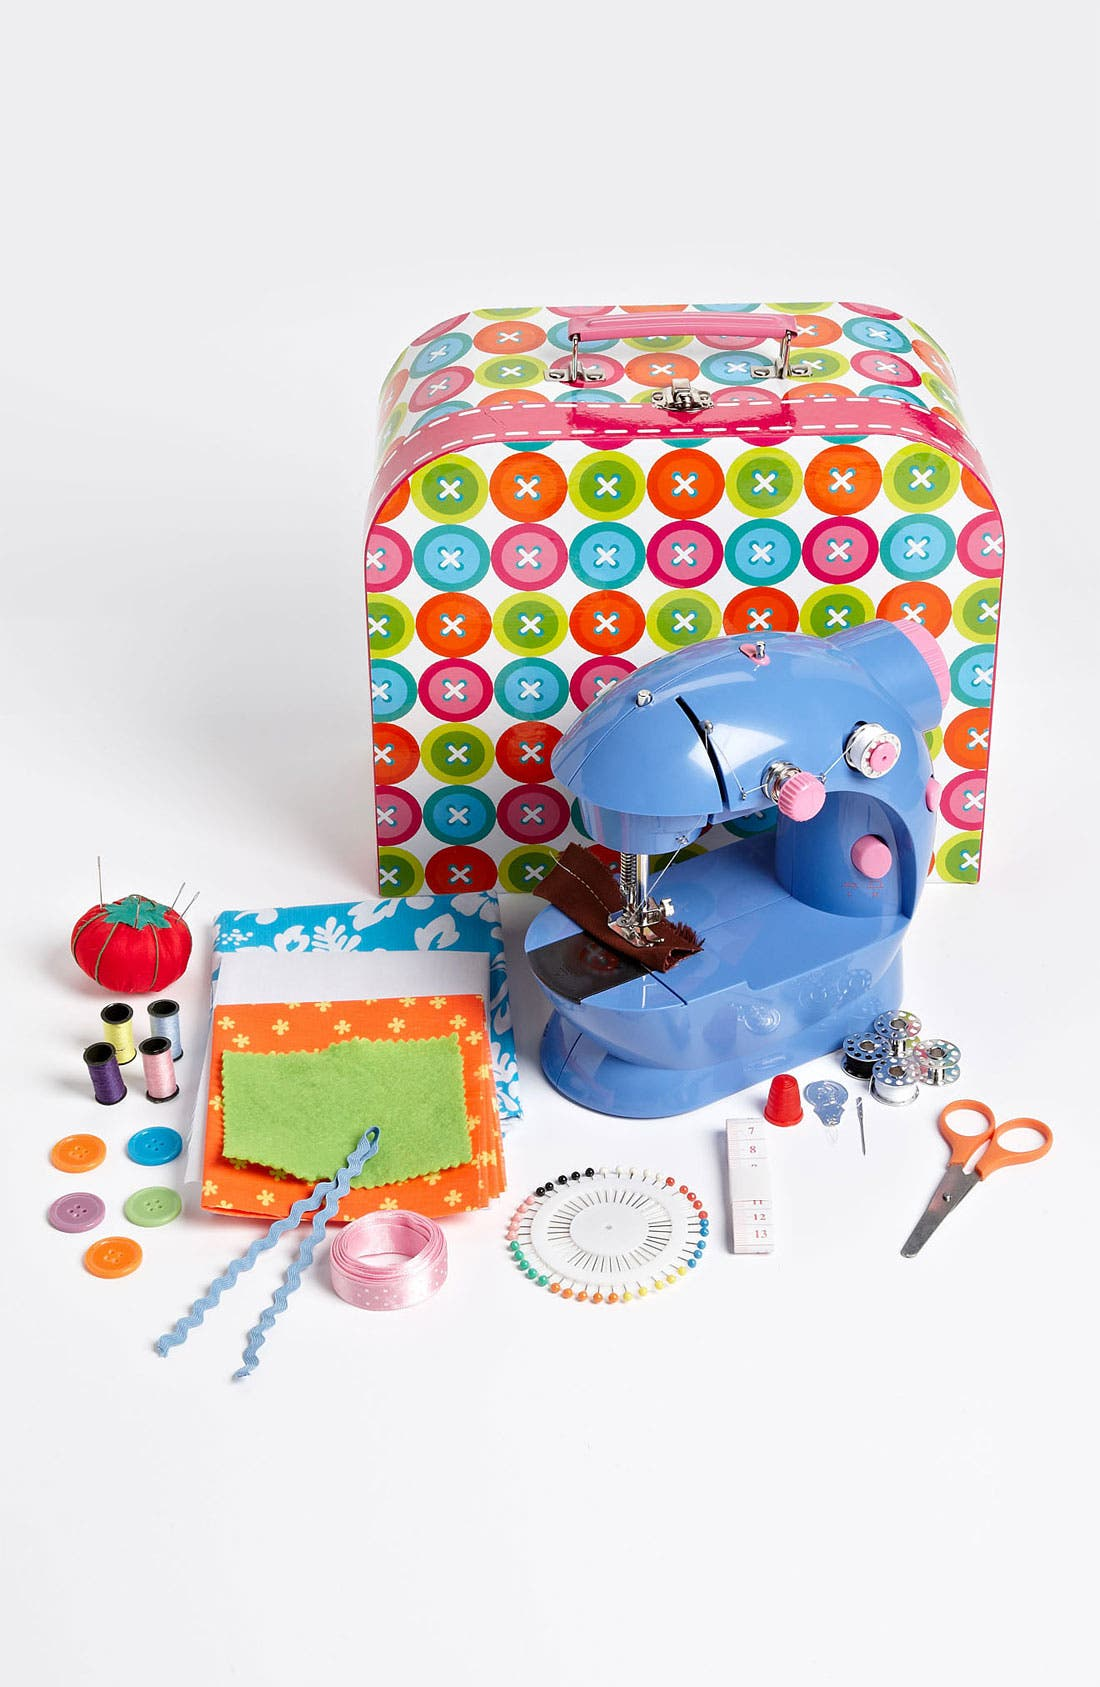 Alternate Image 1 Selected - Alex® Toys 'Sew Fun' Sewing Machine & Kit